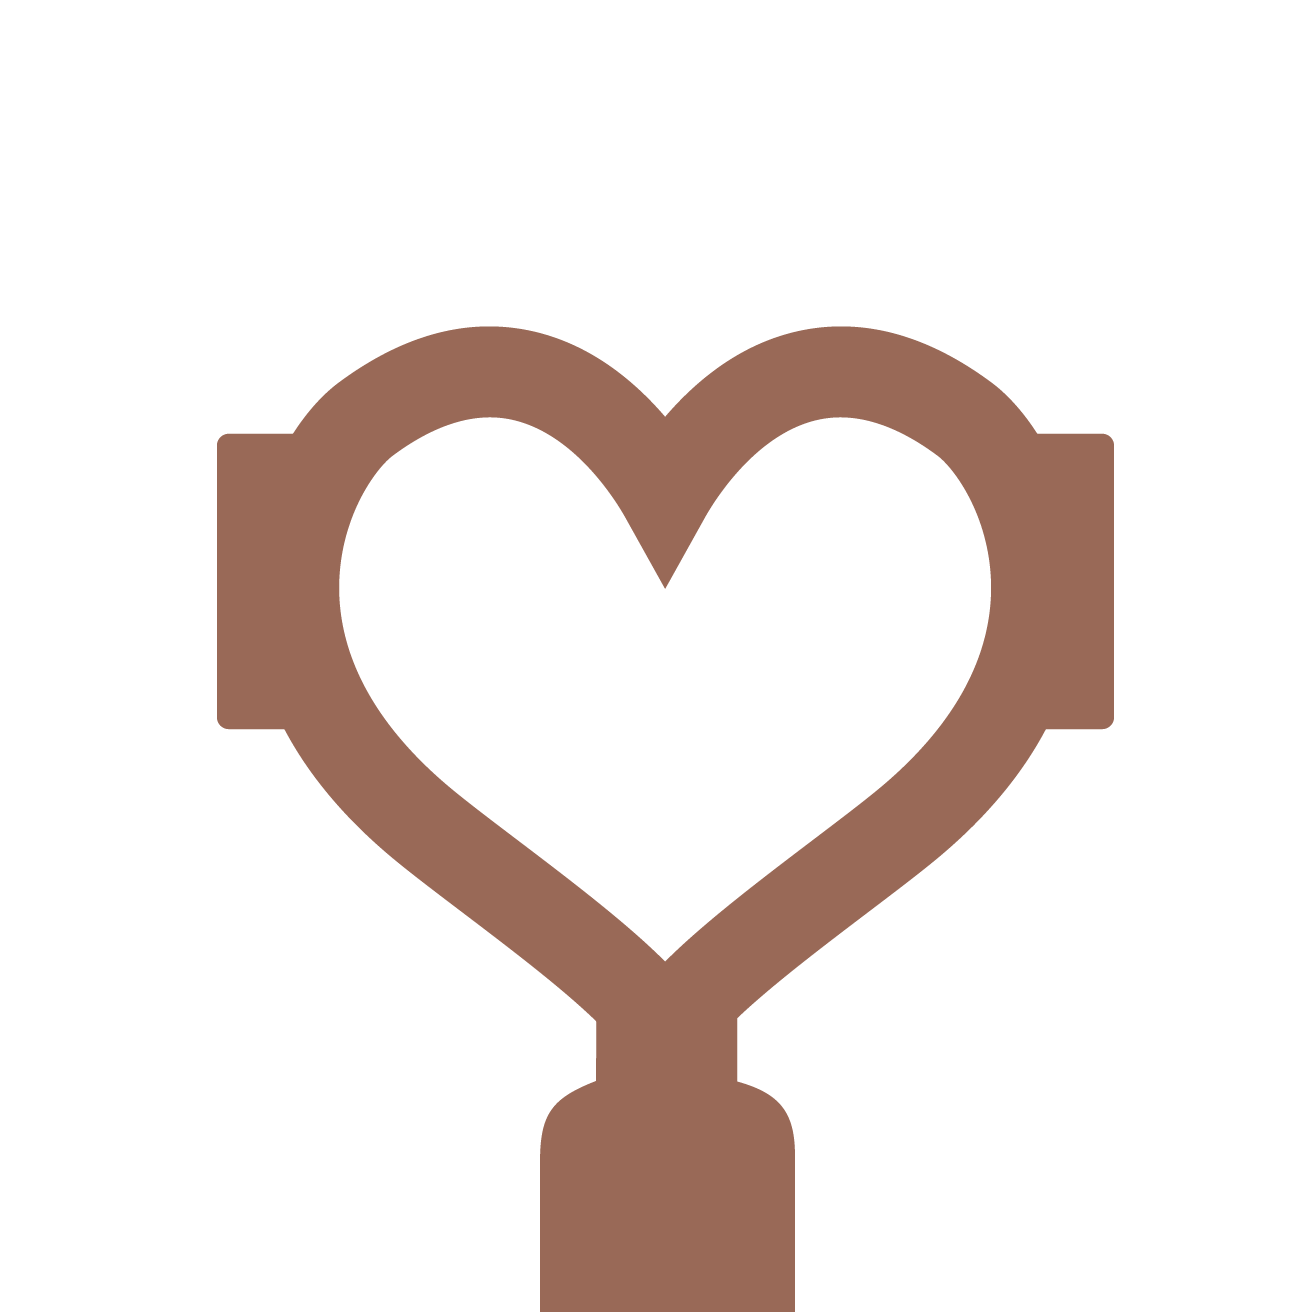 Kruve Coffee Sifter - 6 Filters & Bamboo Sieve holder